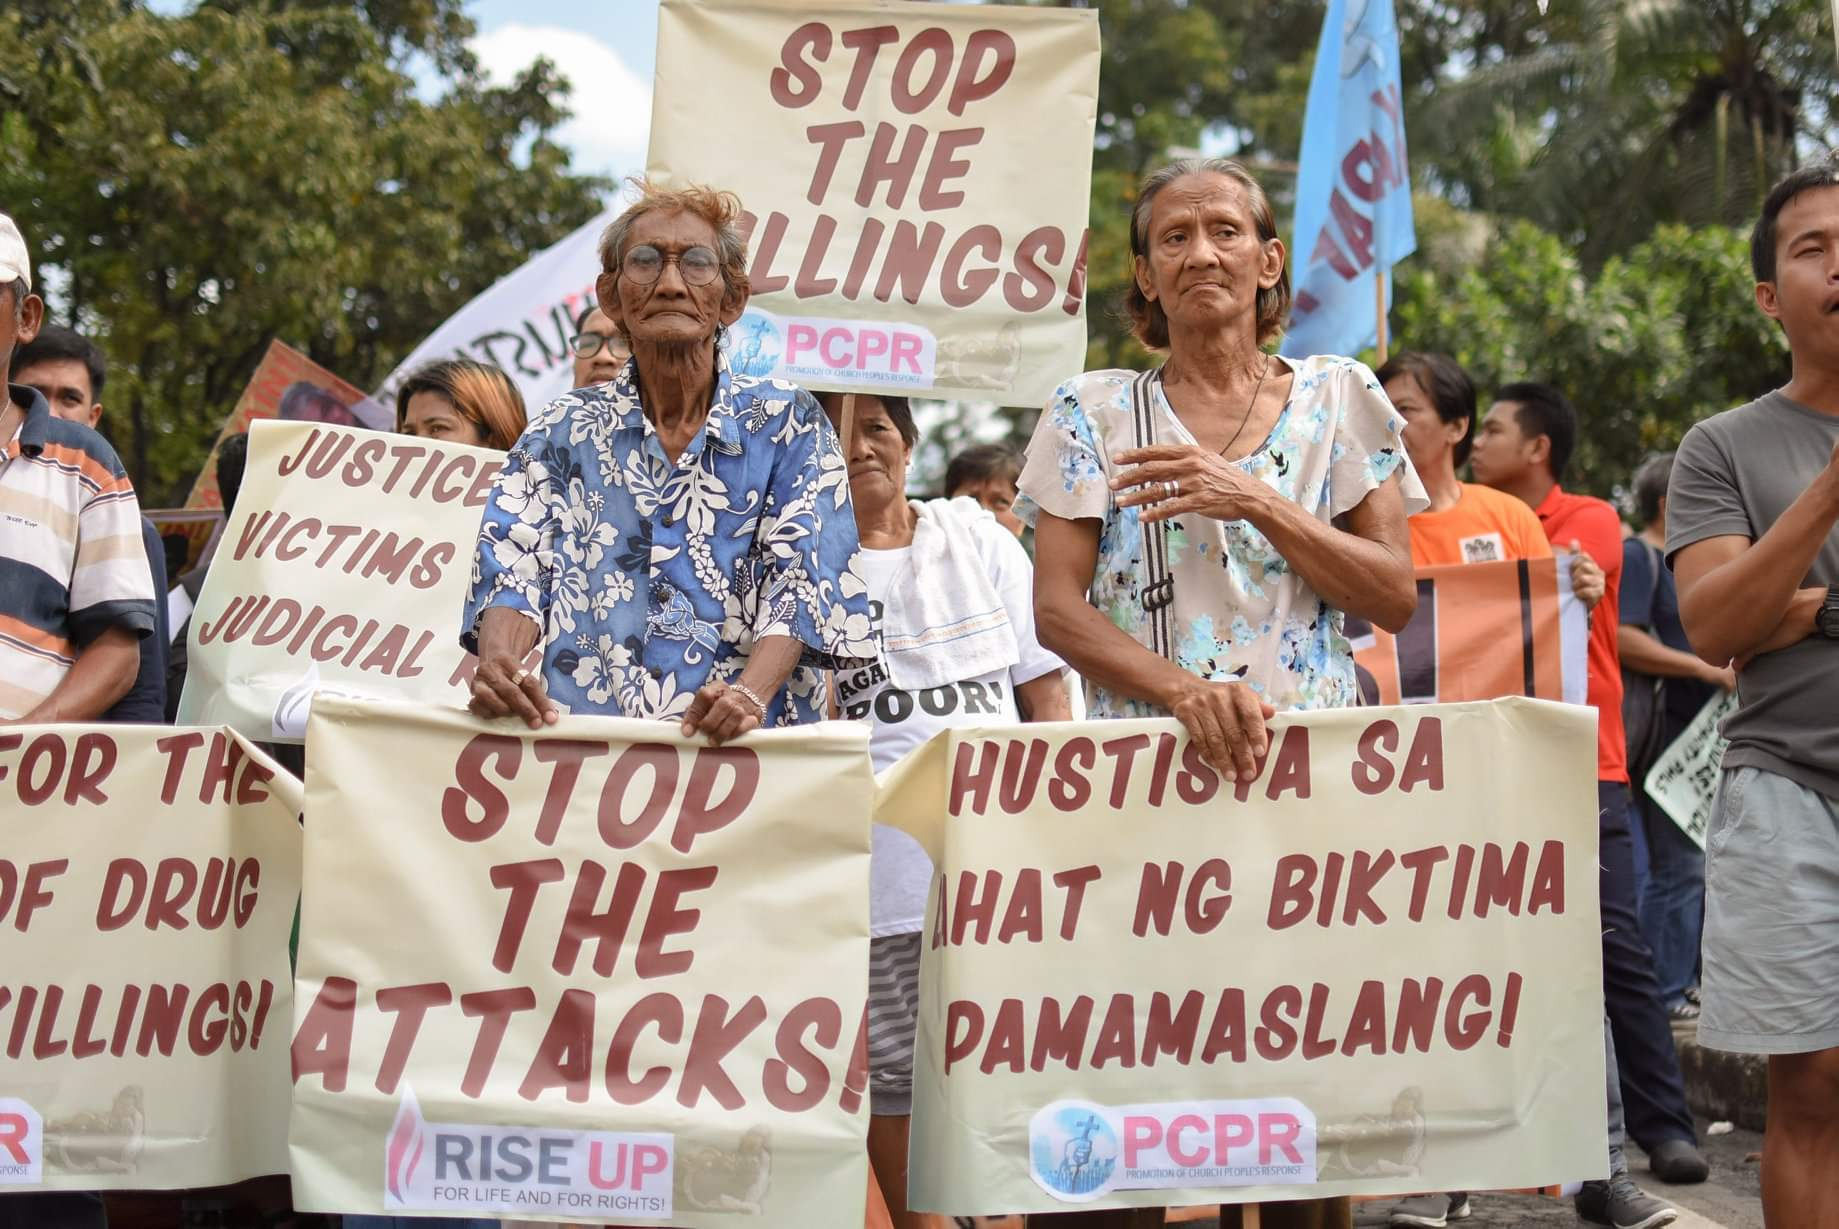 Support the implementation of OHCHR recommendations on Philippine rights situation: Justice for victims of state-sponsored violence